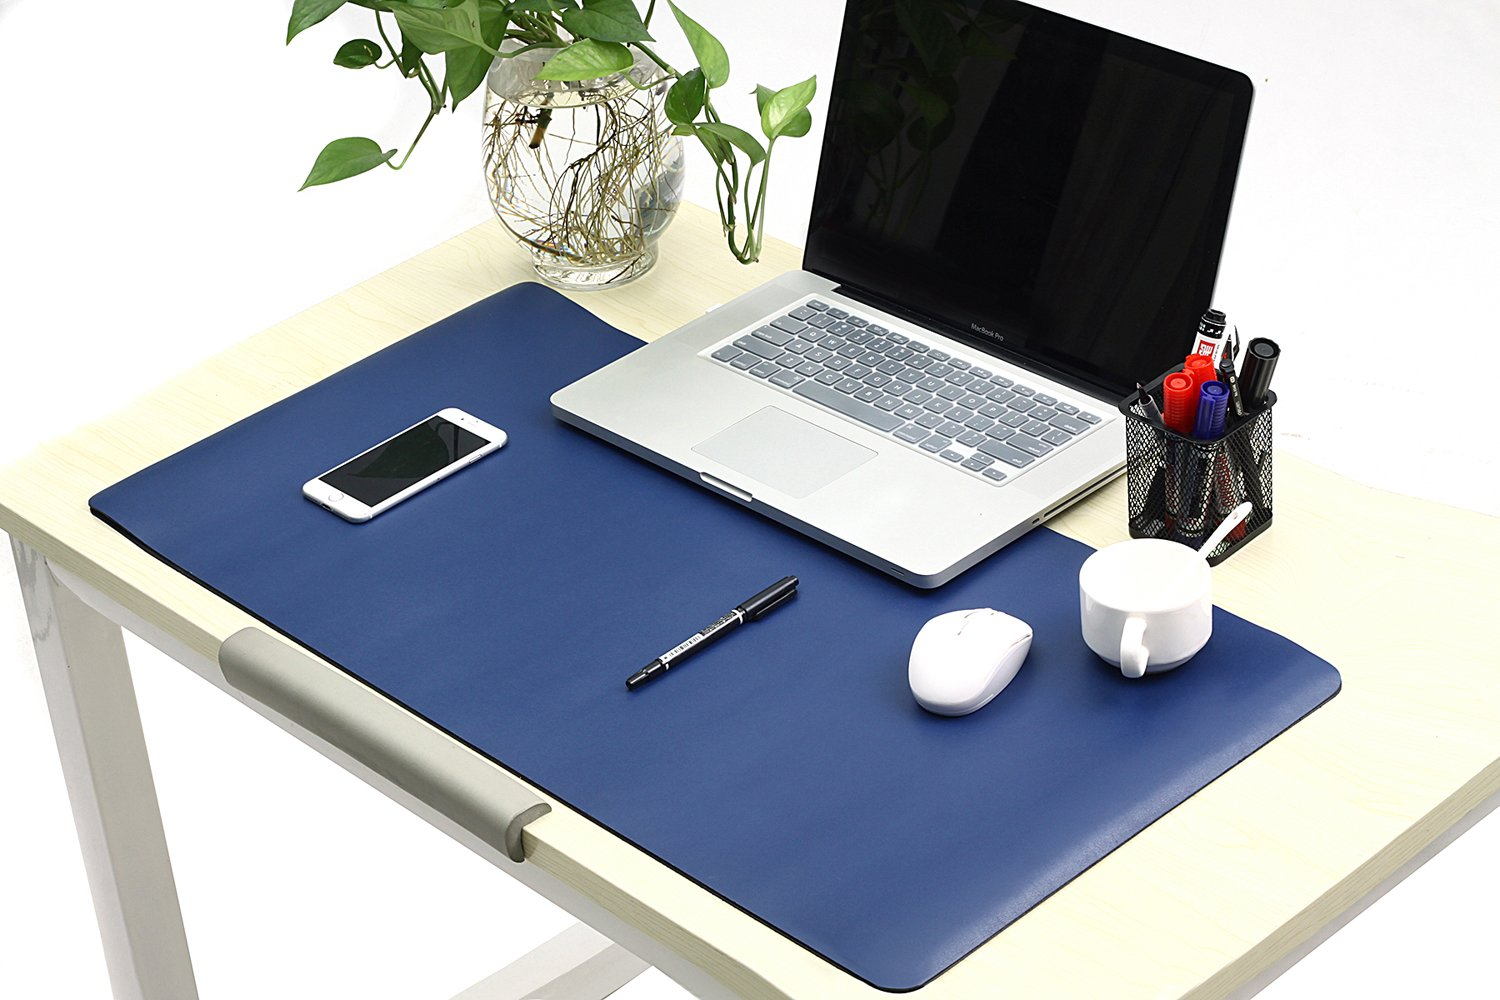 """Leather Desk Pads/Blotter Eco-Friendly Microfiber Pu Leather Desk Mat Protector for Home & Office Non Slip Laptop Keyboard Mouse Pads Extra Large 31.5"""" x 15.7"""" x 0.08"""" (Blue, Medium)"""